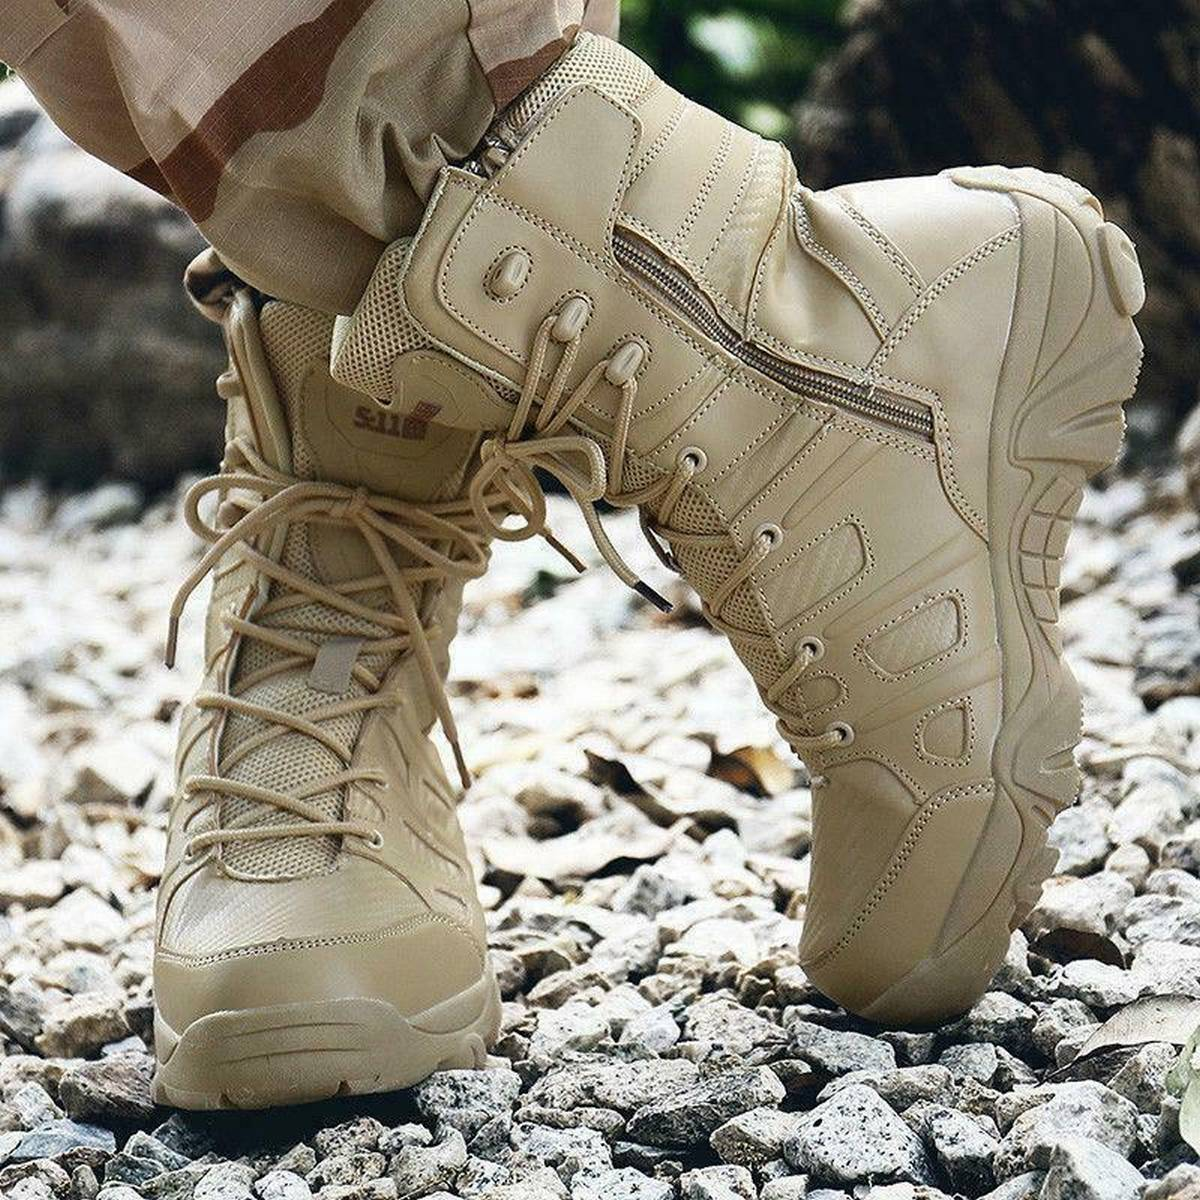 Vibram high Quality Hiking Boots MIlitary Army Design in